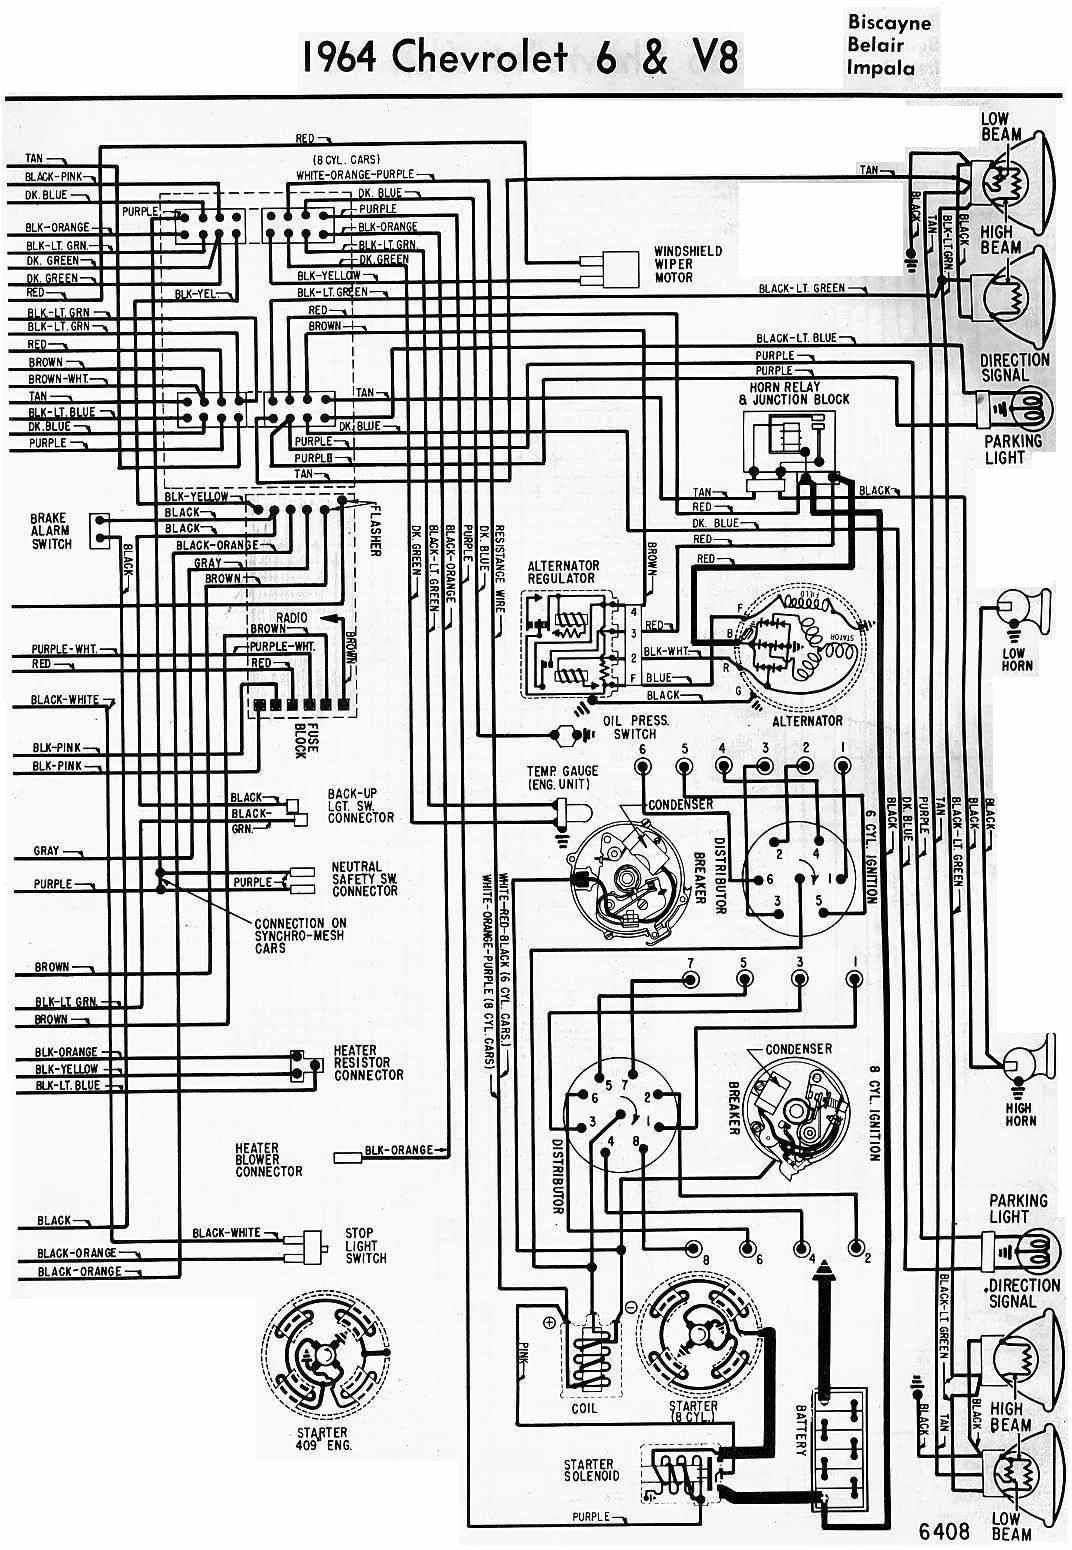 small resolution of 1963 impala engine wiring diagram free download wiring diagram today 1963 impala engine wiring diagram free